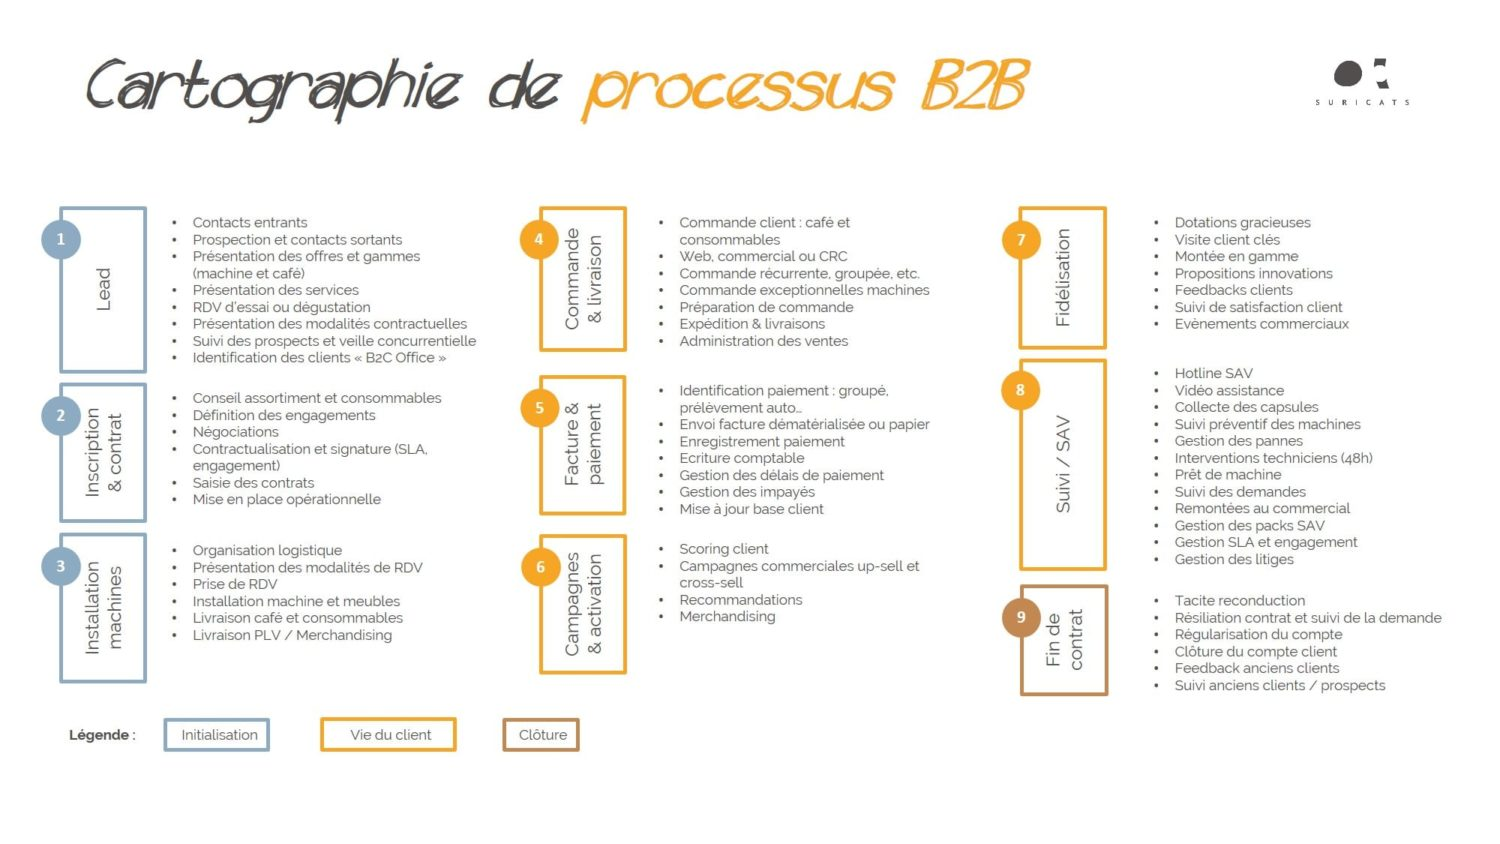 digital business B2B - cartographie processus